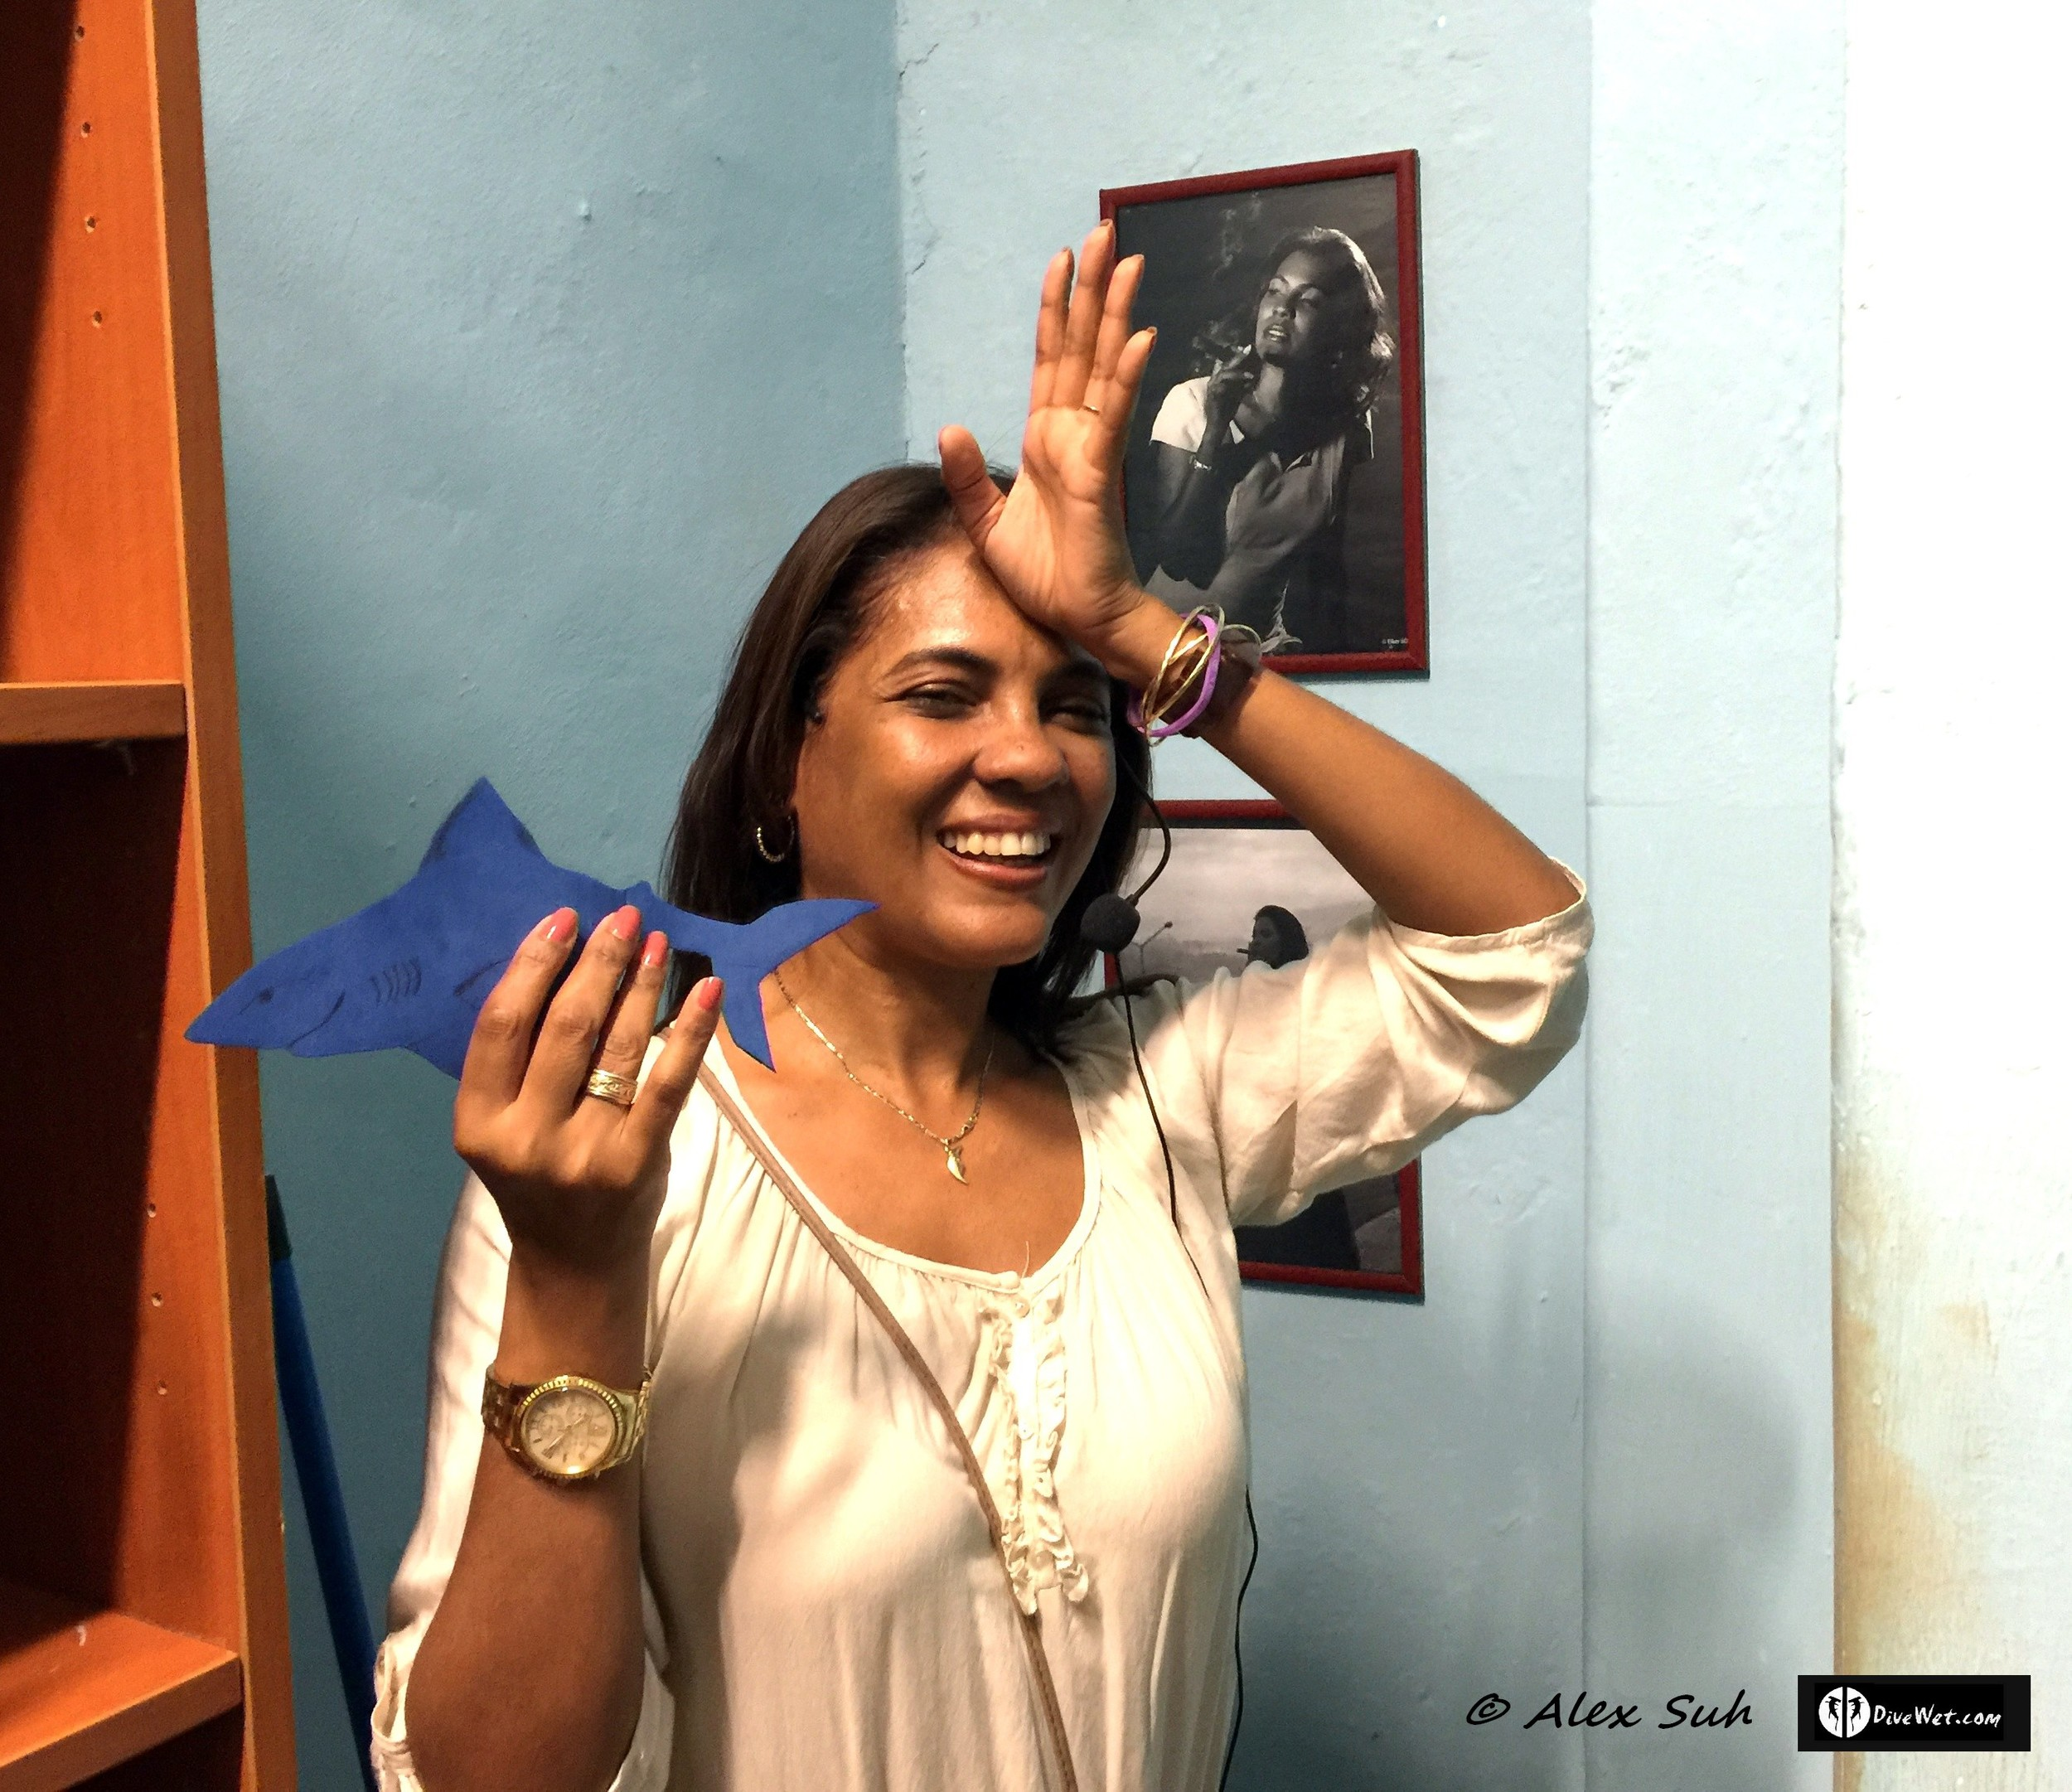 Cuban cigar tour guide showing her support for #StopSharkFinning with Spence the Shark. Her picture is hanging behind her